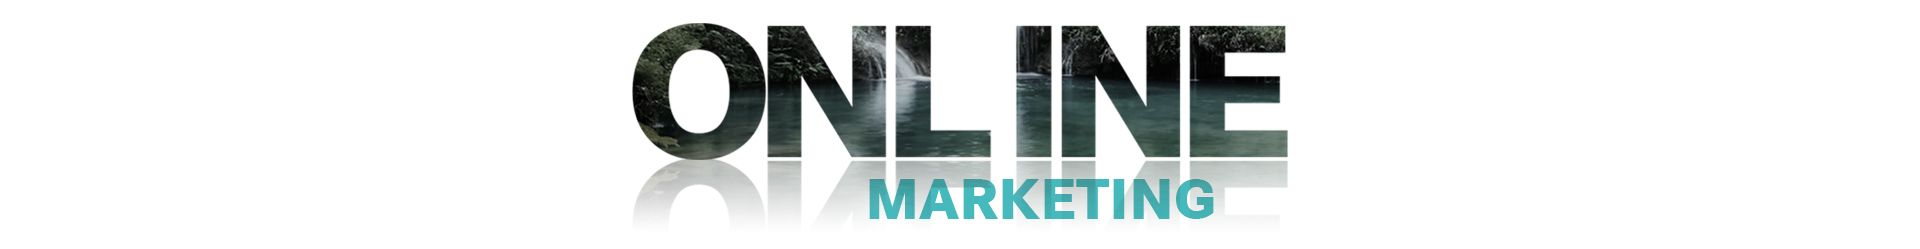 Online marketing main banner